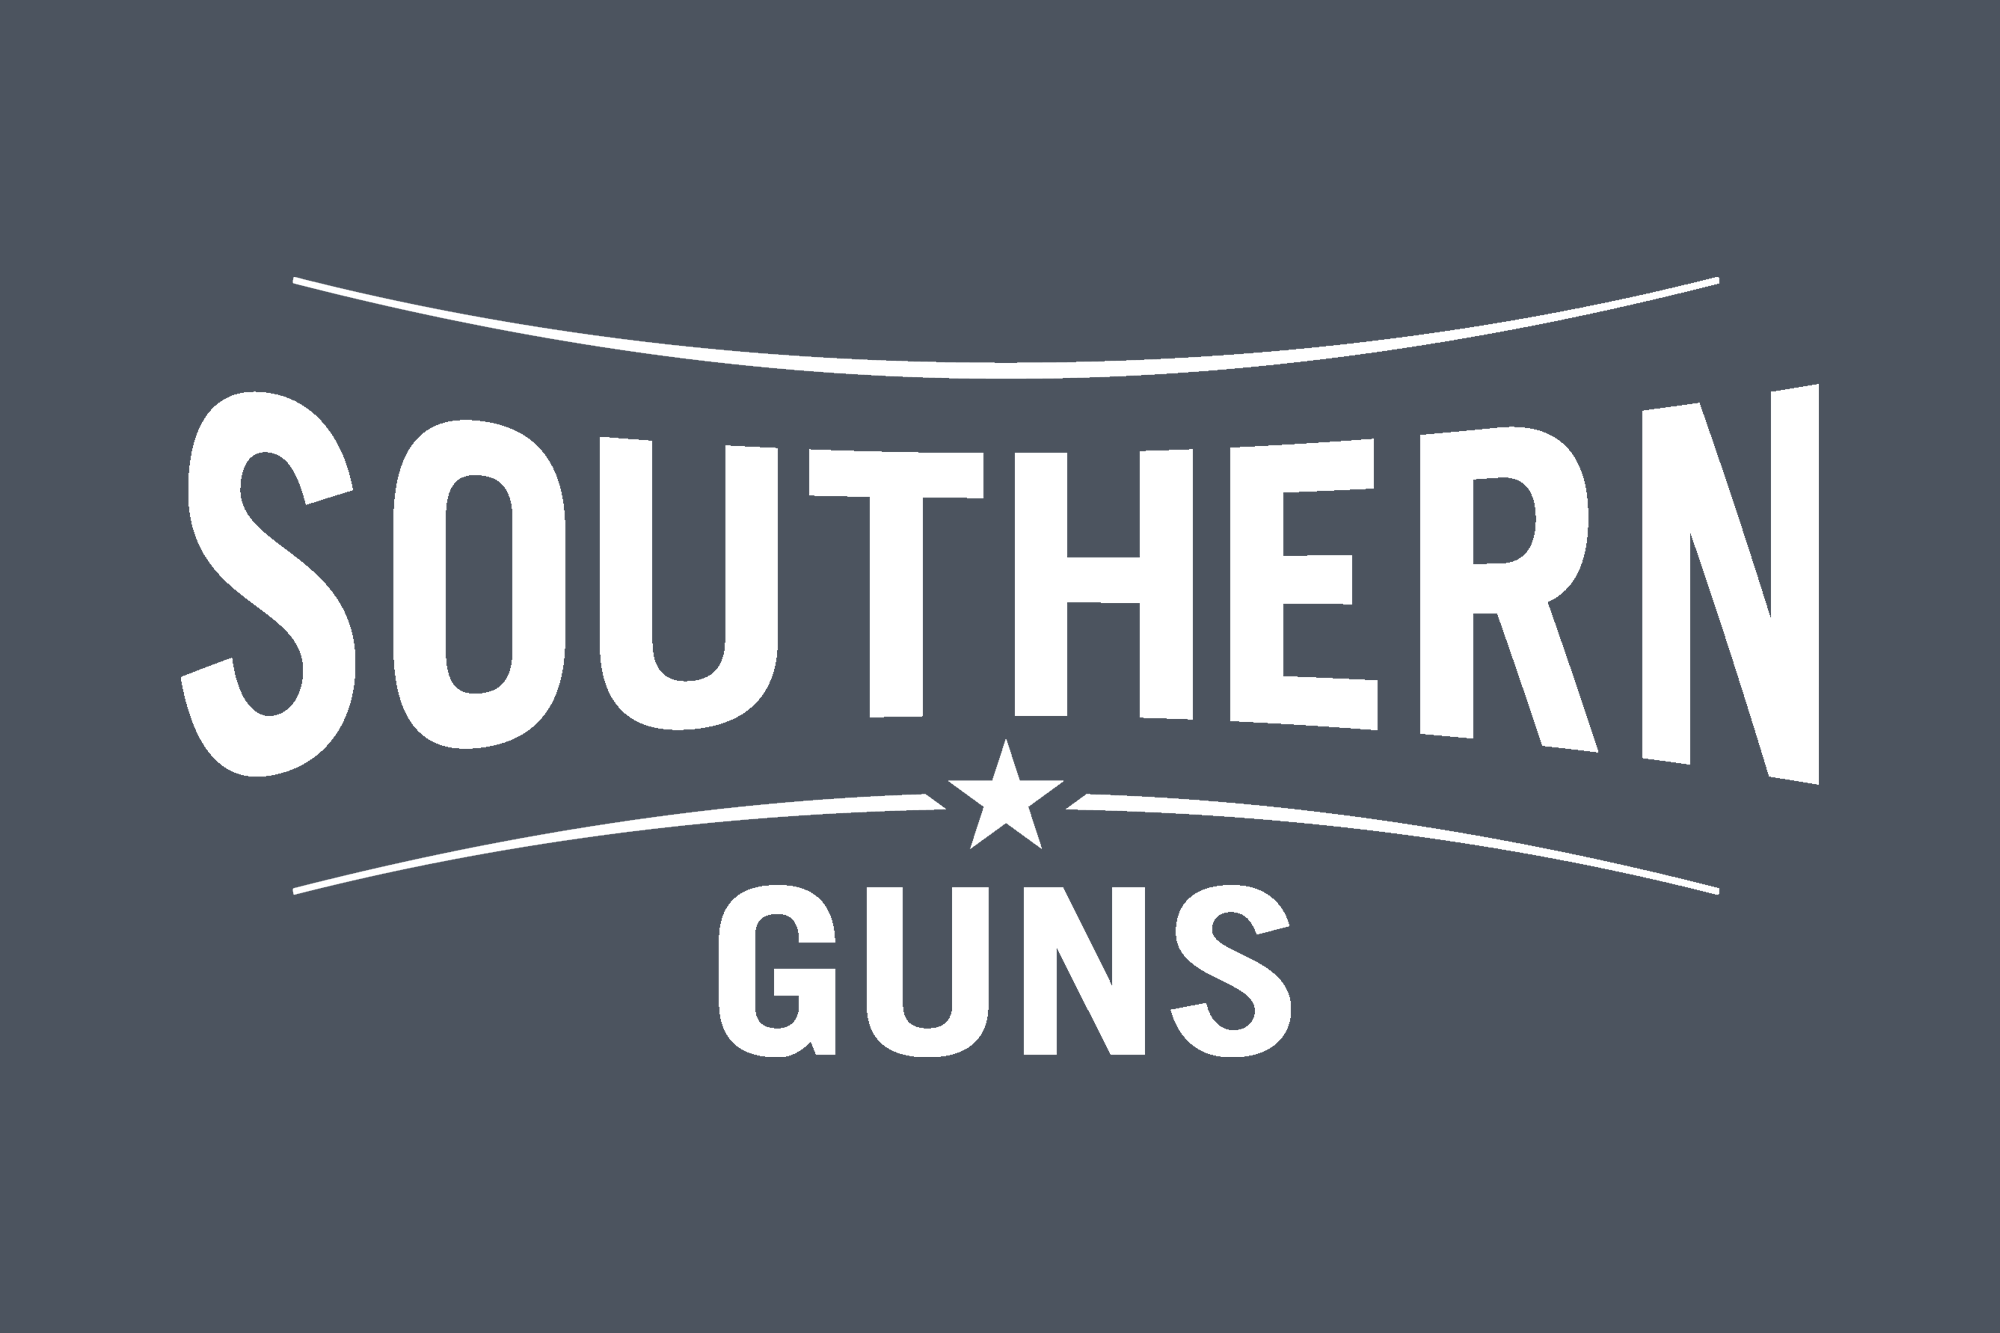 souther-gun-web.png